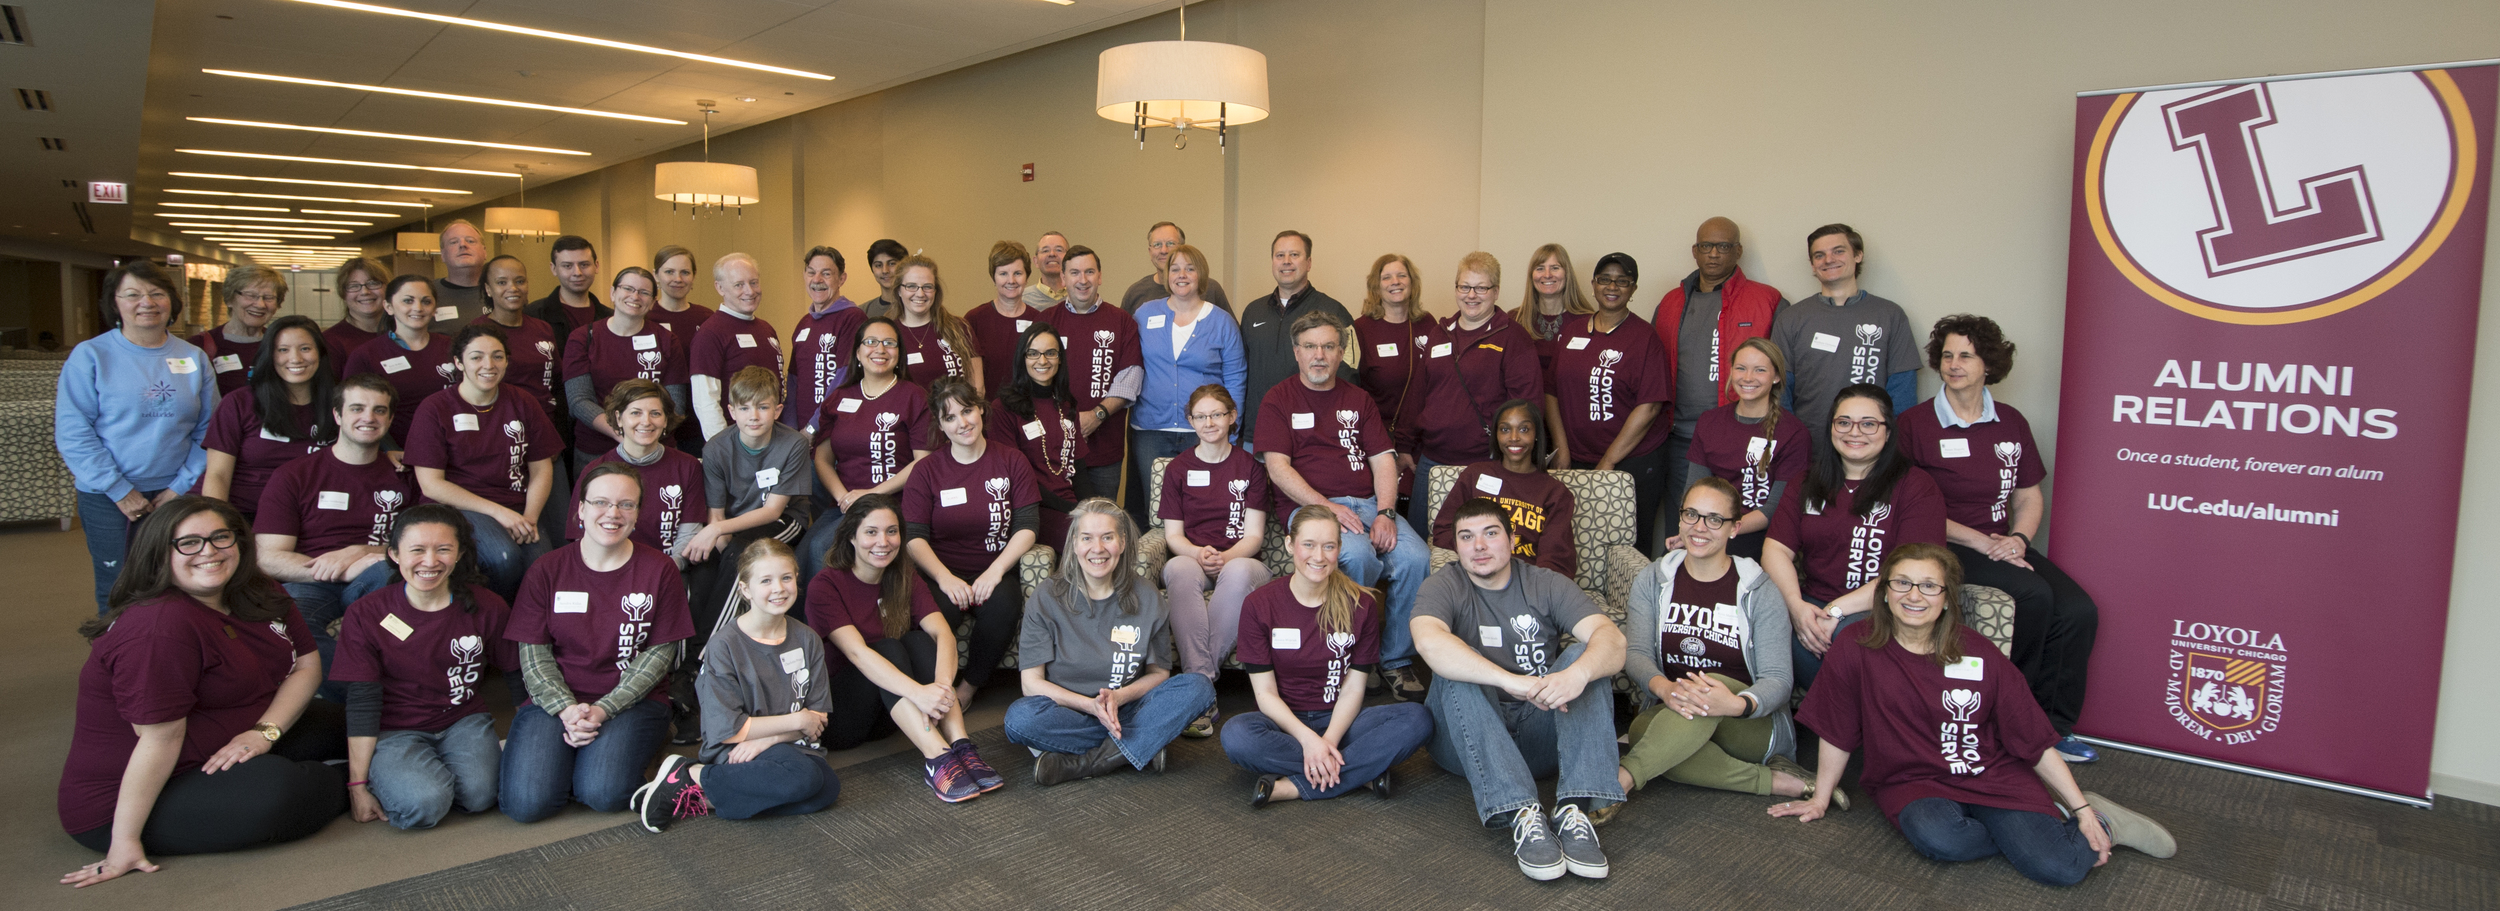 Loyola University Chicago Jesuit Alumni Service Day: April 30, 2016 (Photo by Ray Manrique/Dong Lu for Loyola University Chicago)